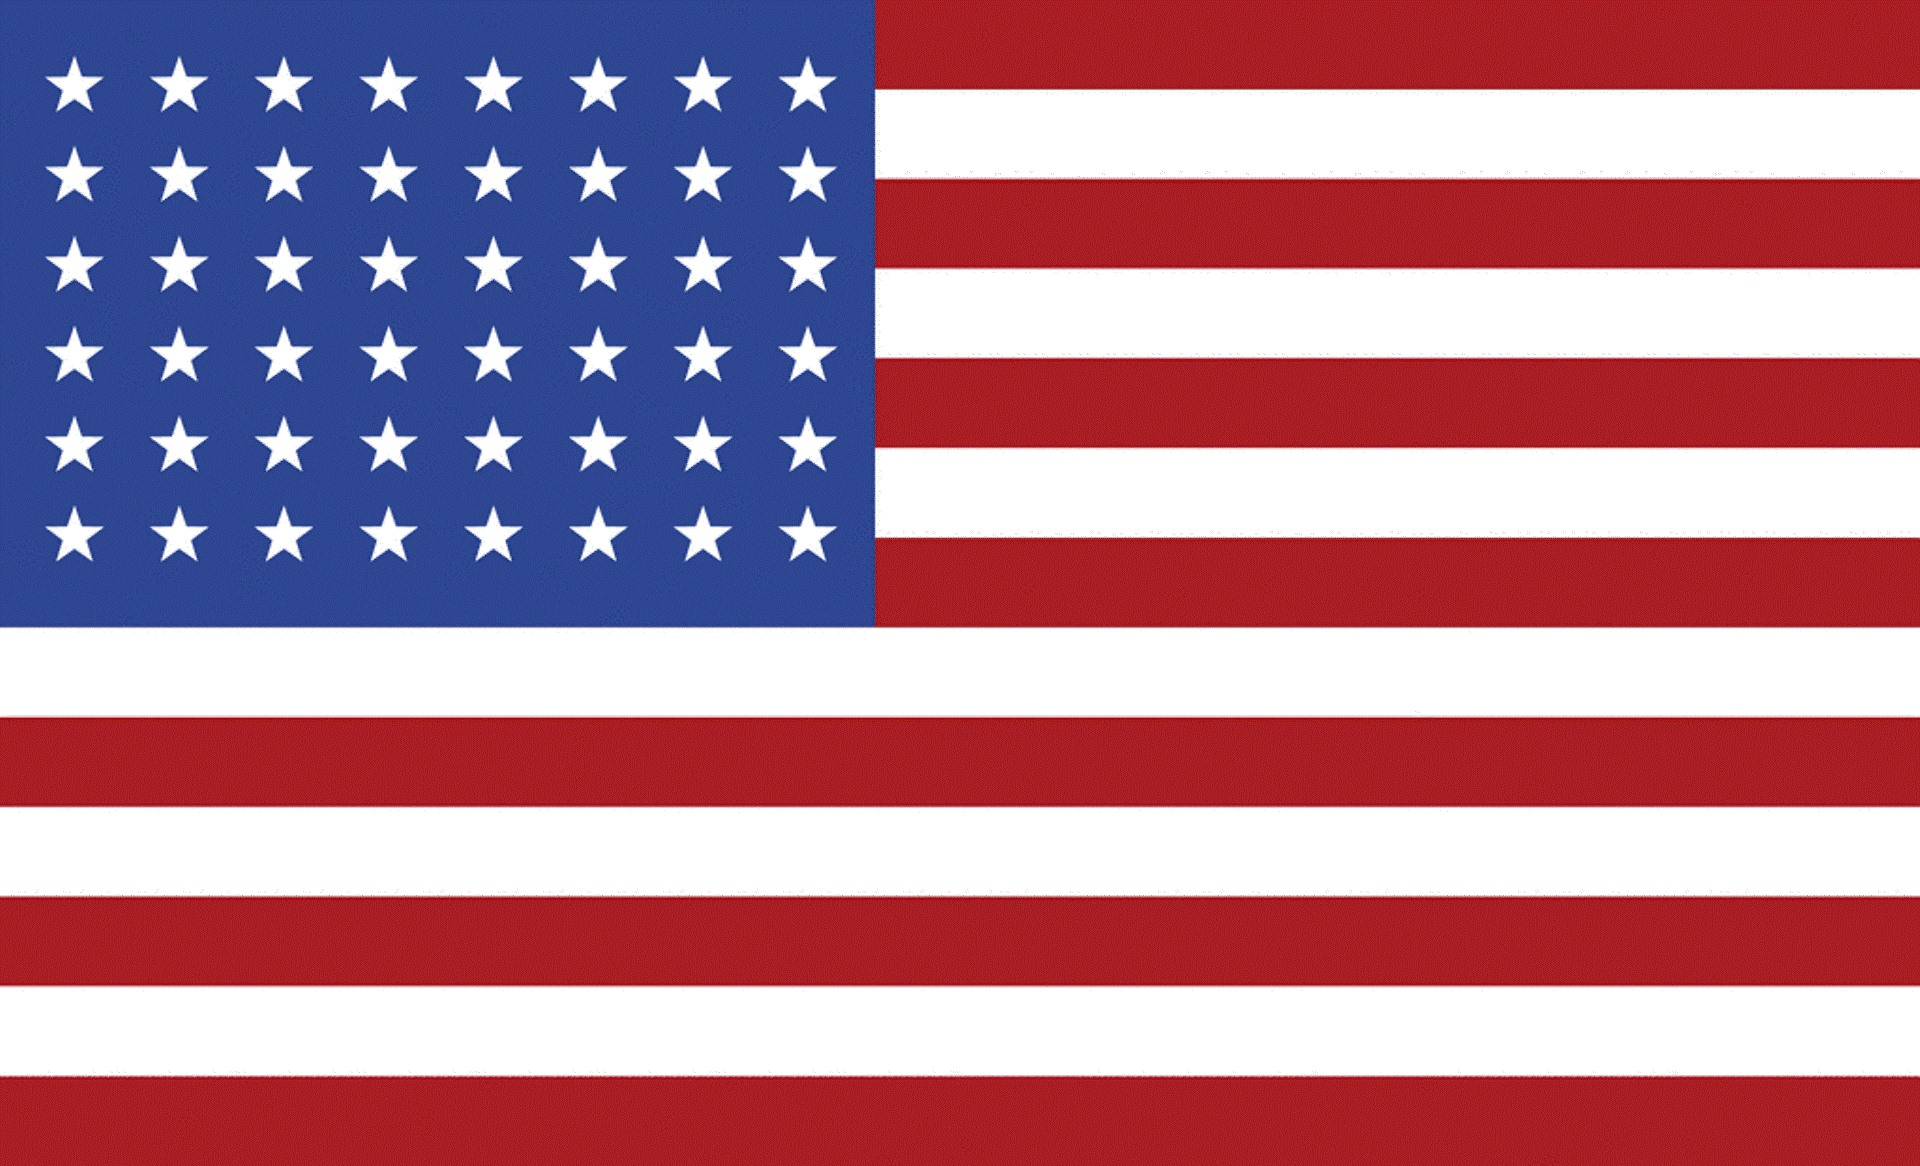 HD USA Wallpapers The Beauty Of Diversity In USA 1920x1166